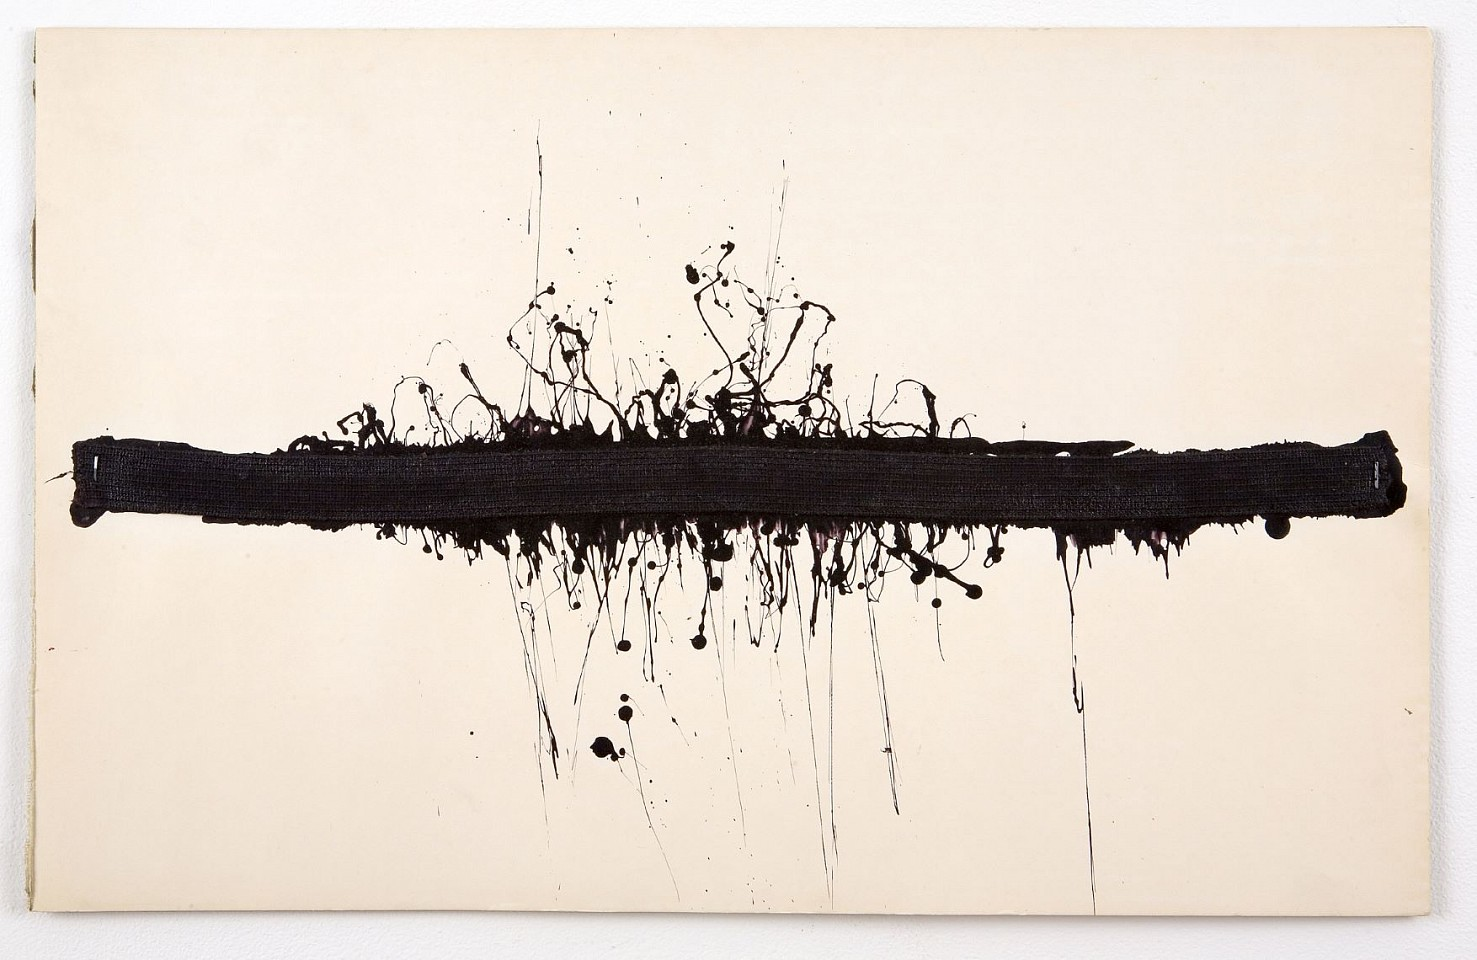 Ree Morton ,   Untitled (Black Horizontal)  ,  1968-1970     ink and collage on paper on board     14 x 22 in./35.6 x 55.9 cm     REM-70-DR-093